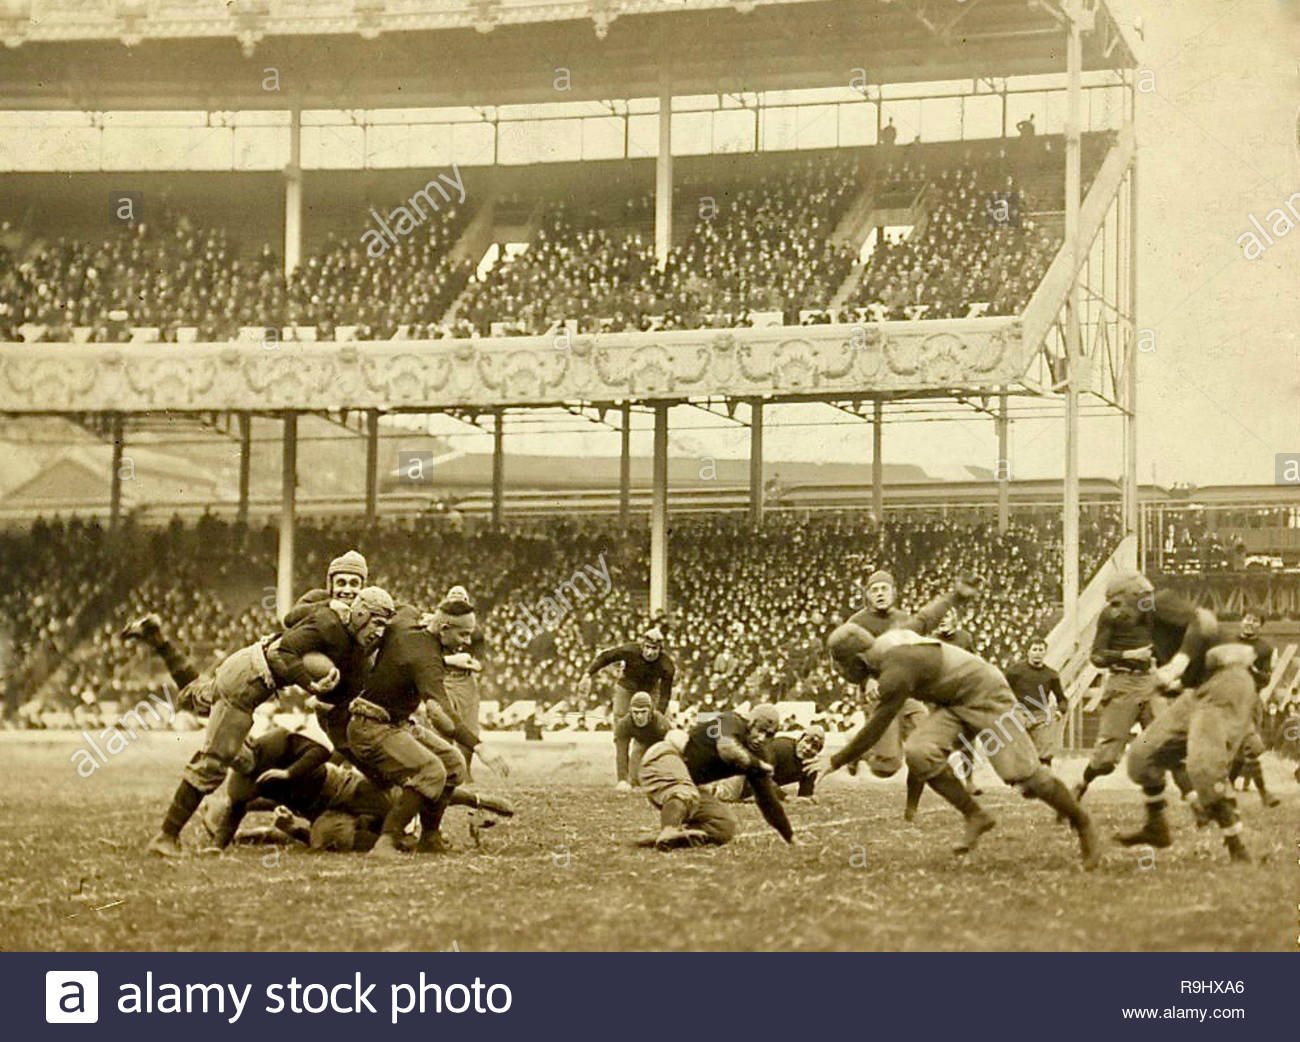 Annual Army v Navy game, Polo Grounds, New York 1916. - Stock Image